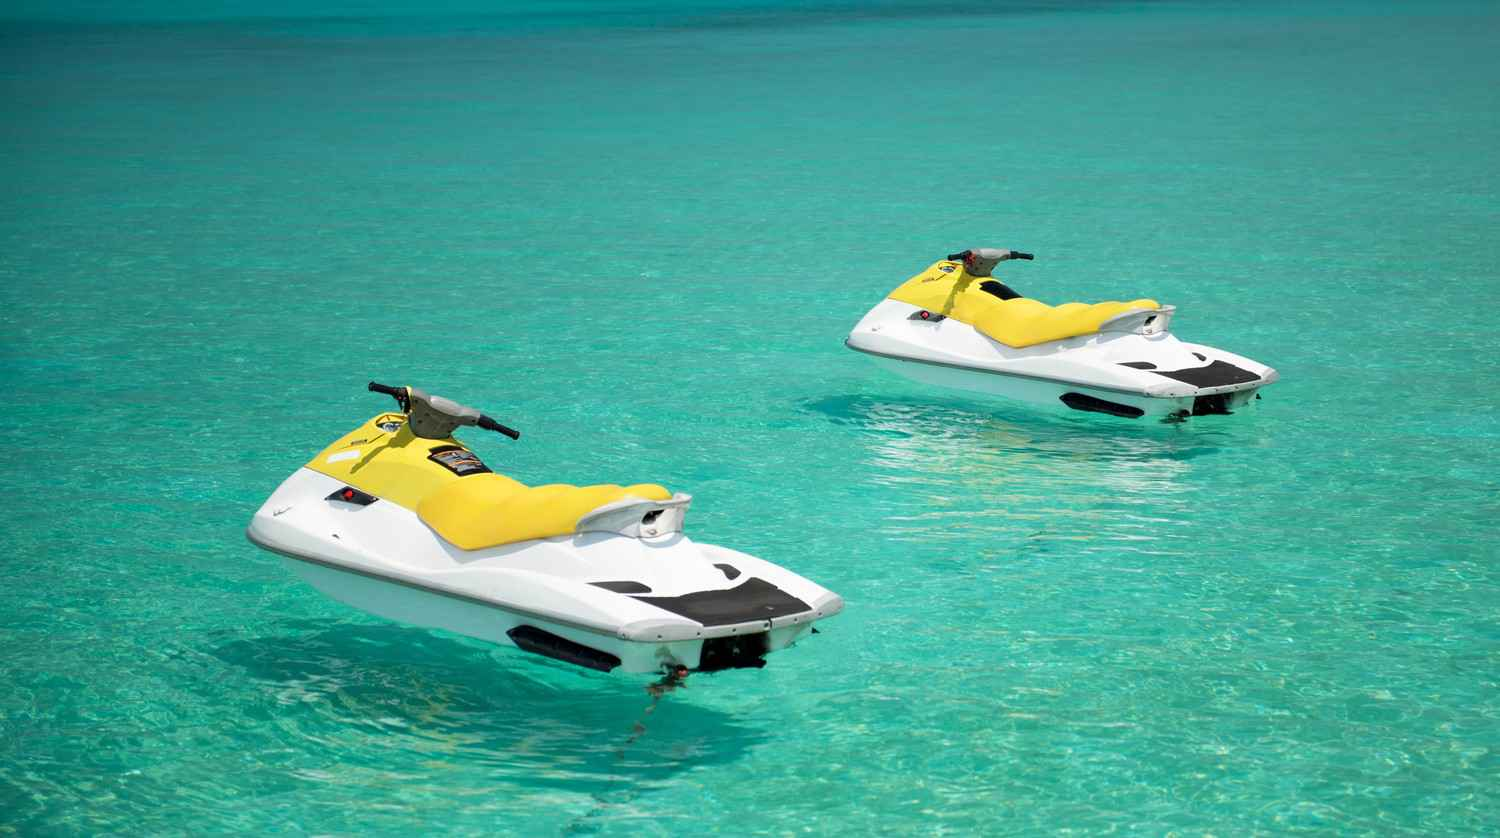 Two jet skis in crystal clear water.